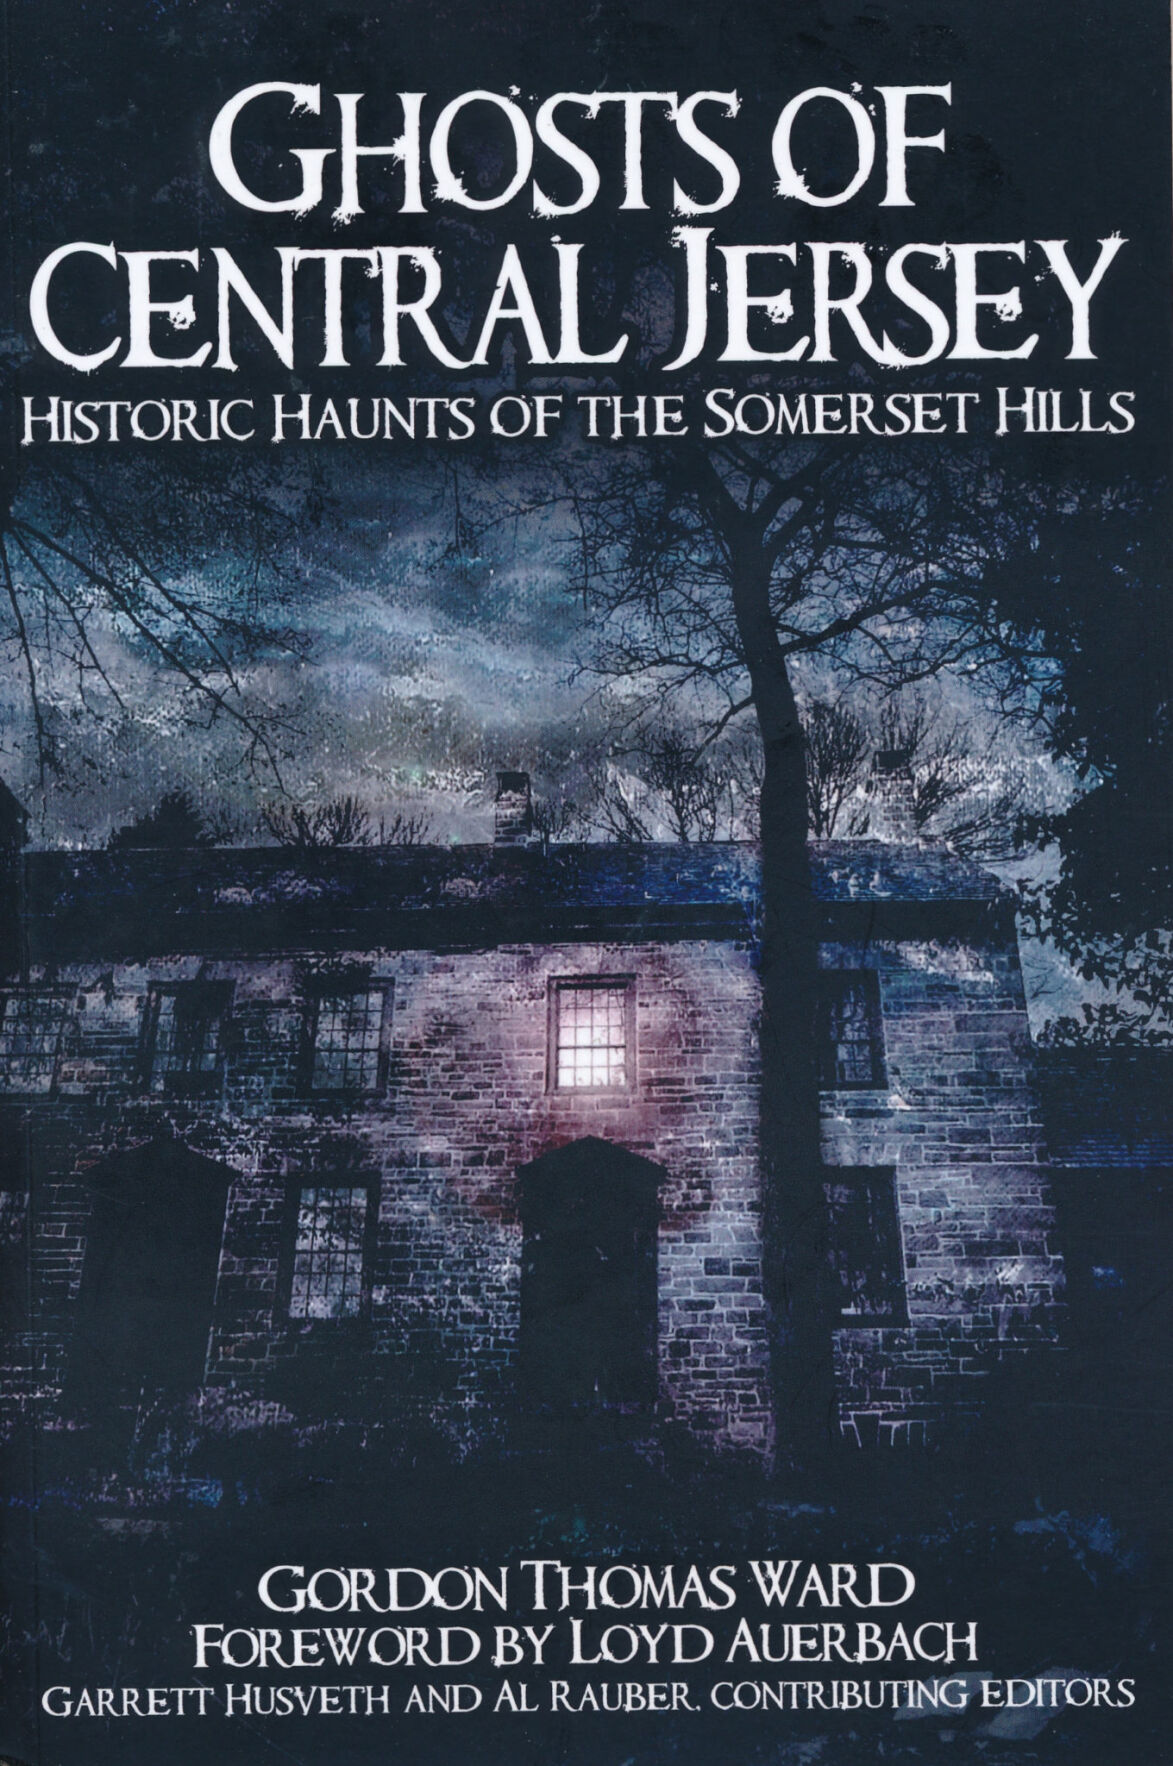 Haunted-Central-Jersey1bb.jpg